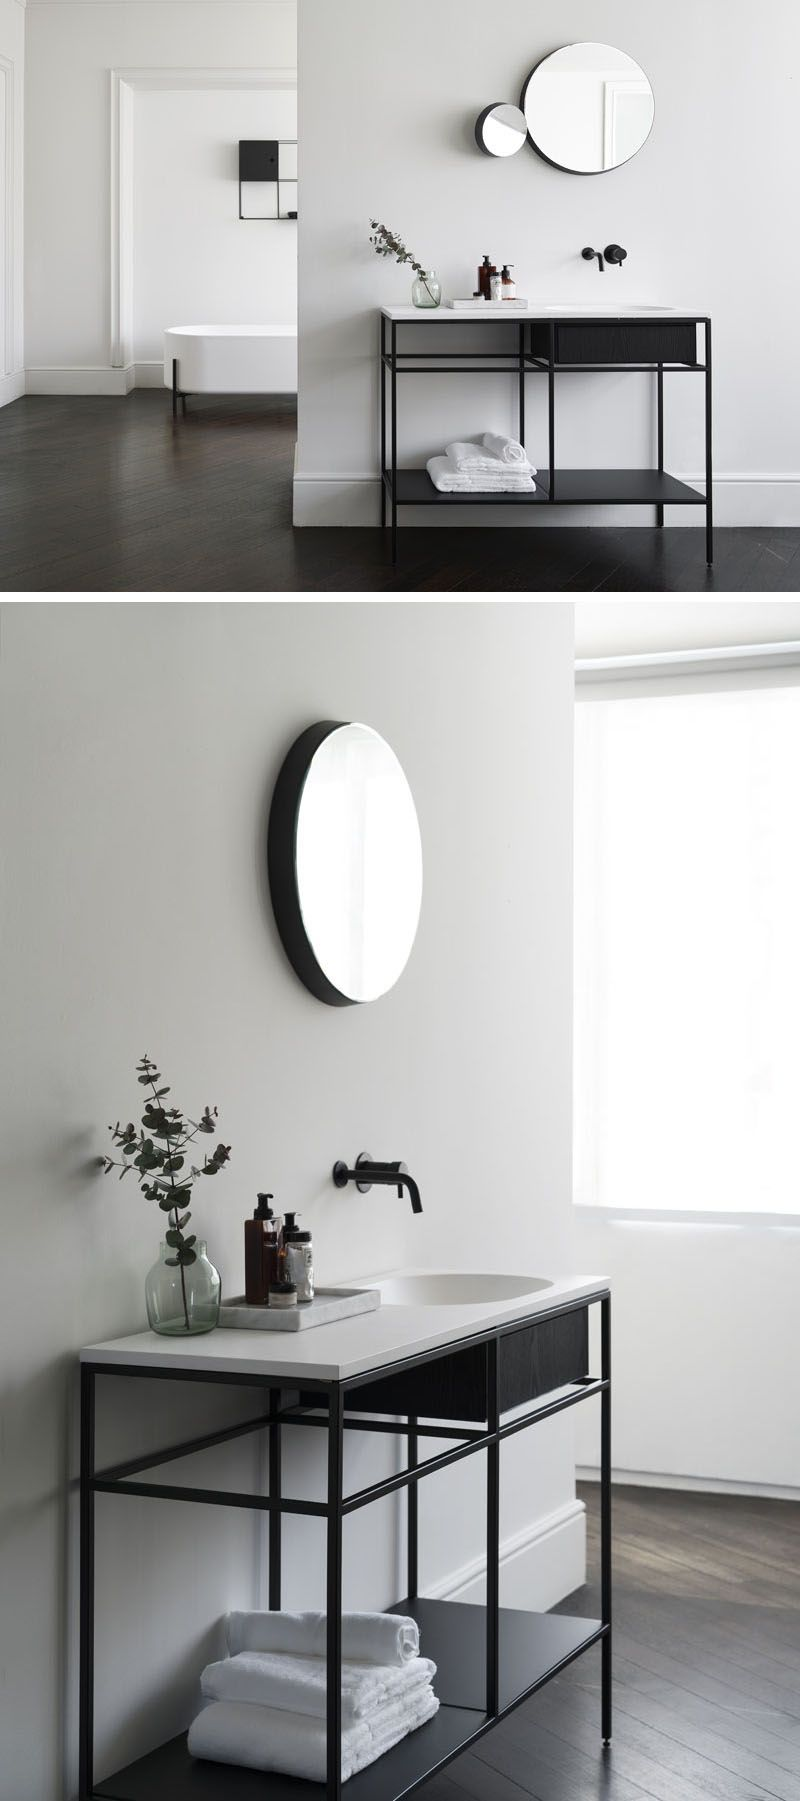 Norm architects have designed a collection of minimalist bathroom consoles